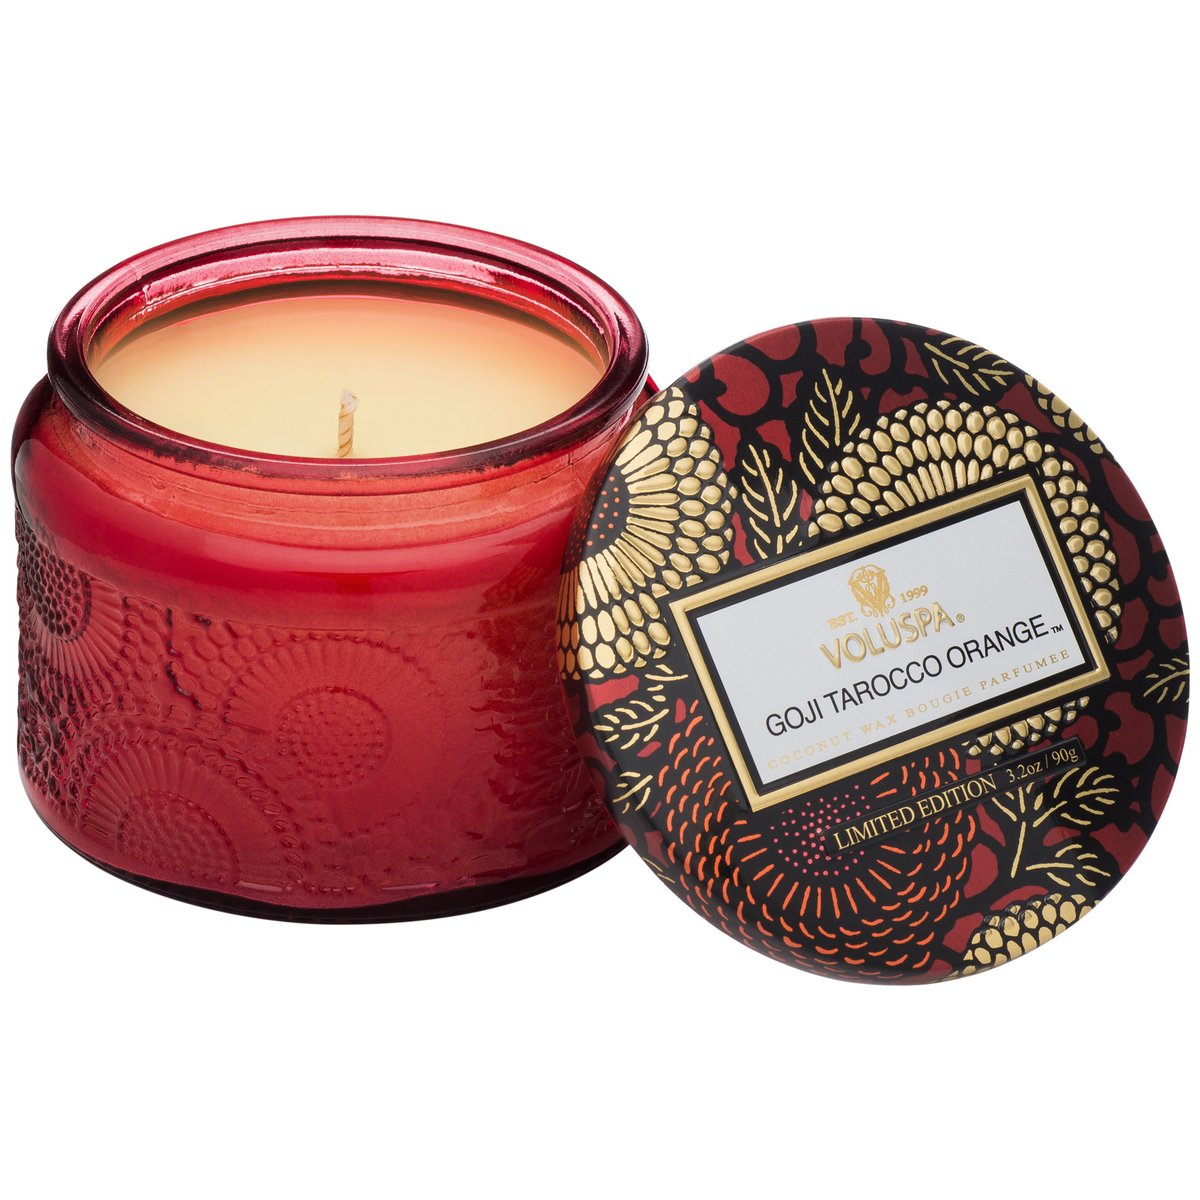 Notes of Goji Berry, Ripe Mango & Tarocco Orange.This embossed candle features a metallic lid, making it perfect for travel and smaller spaces.